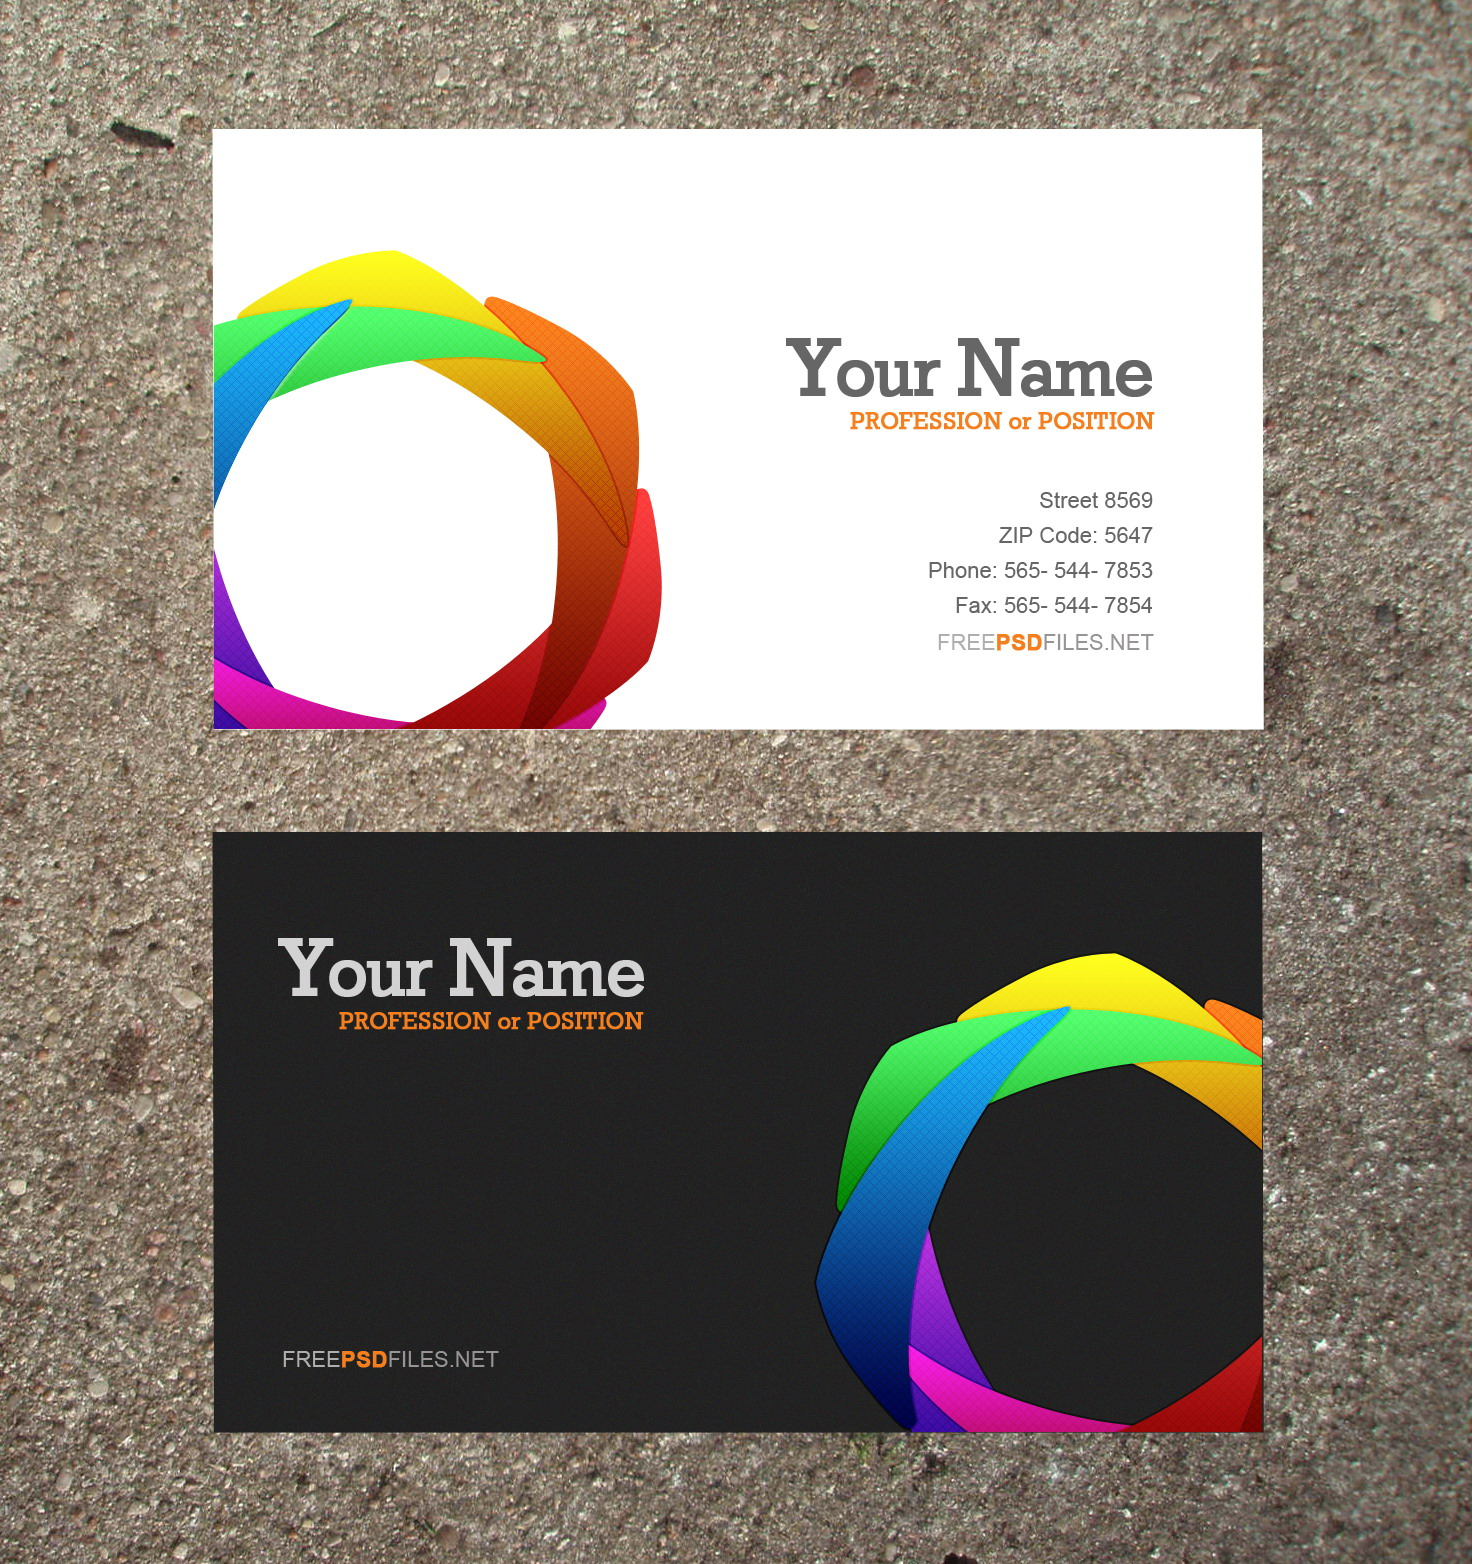 10 Free Business Card PSD Template Download Images